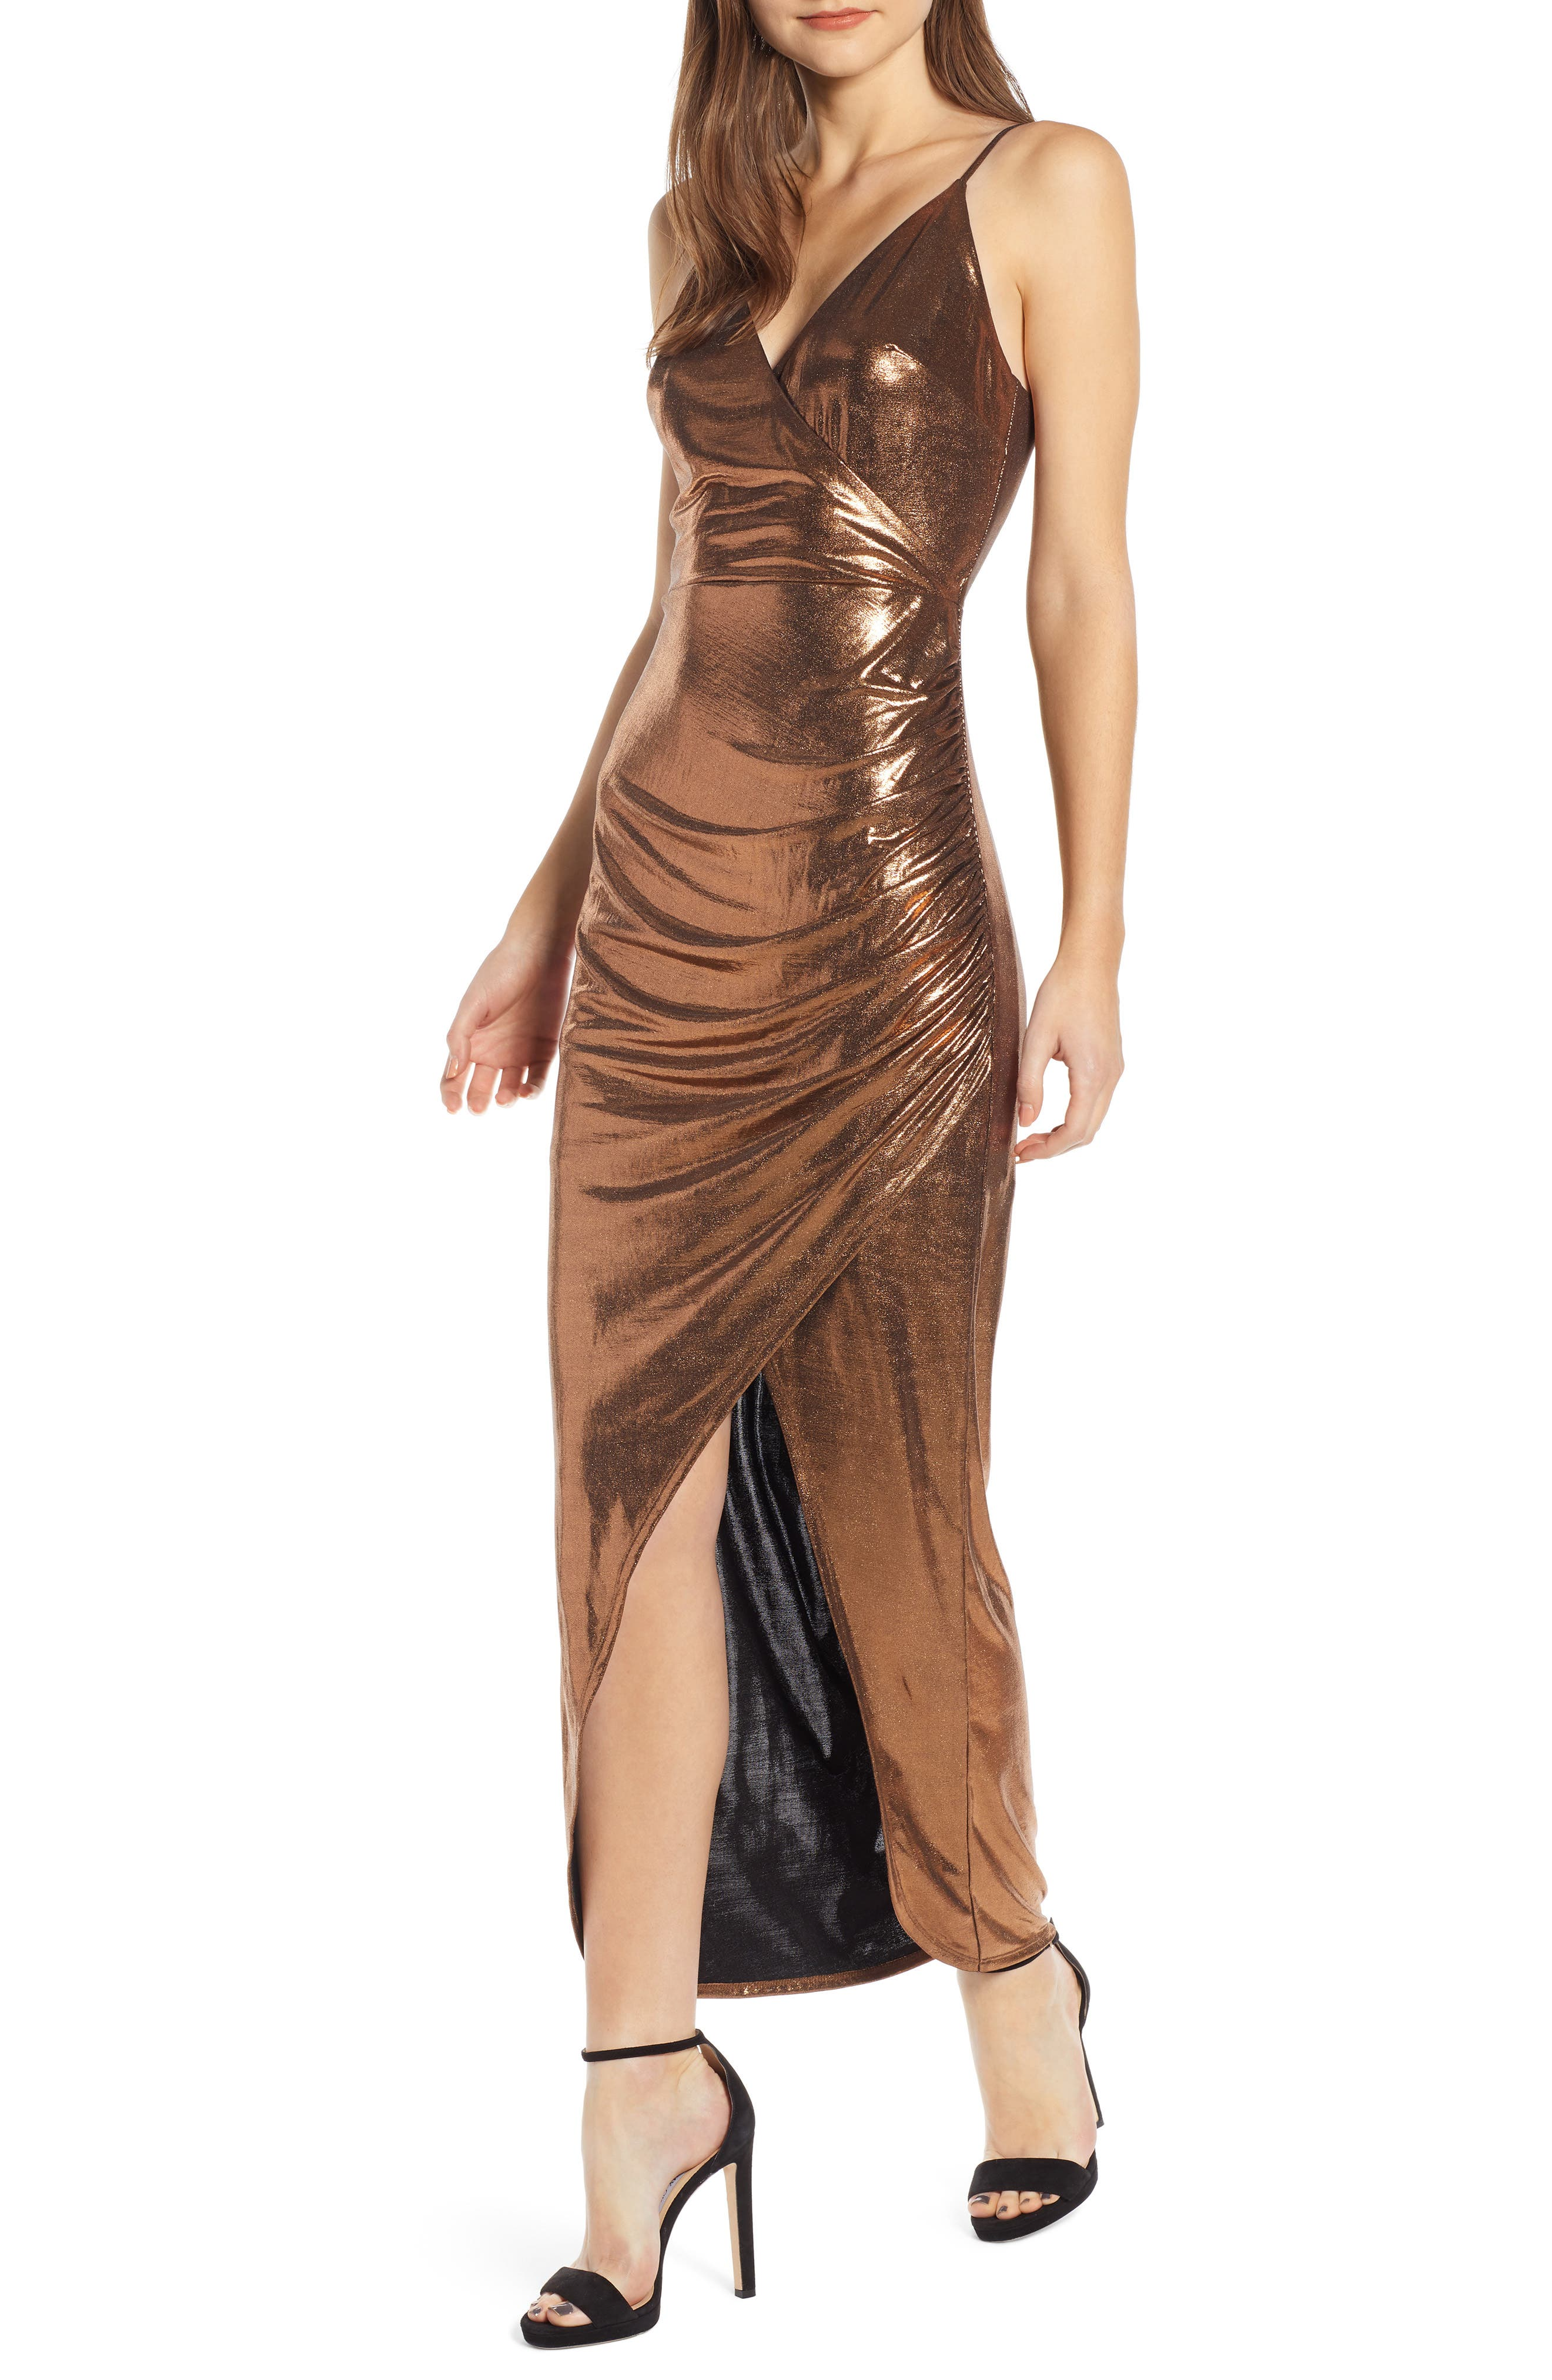 70s Prom, Formal, Evening, Party Dresses Womens Wayf Sonnie Ruched Metallic Dress $89.00 AT vintagedancer.com